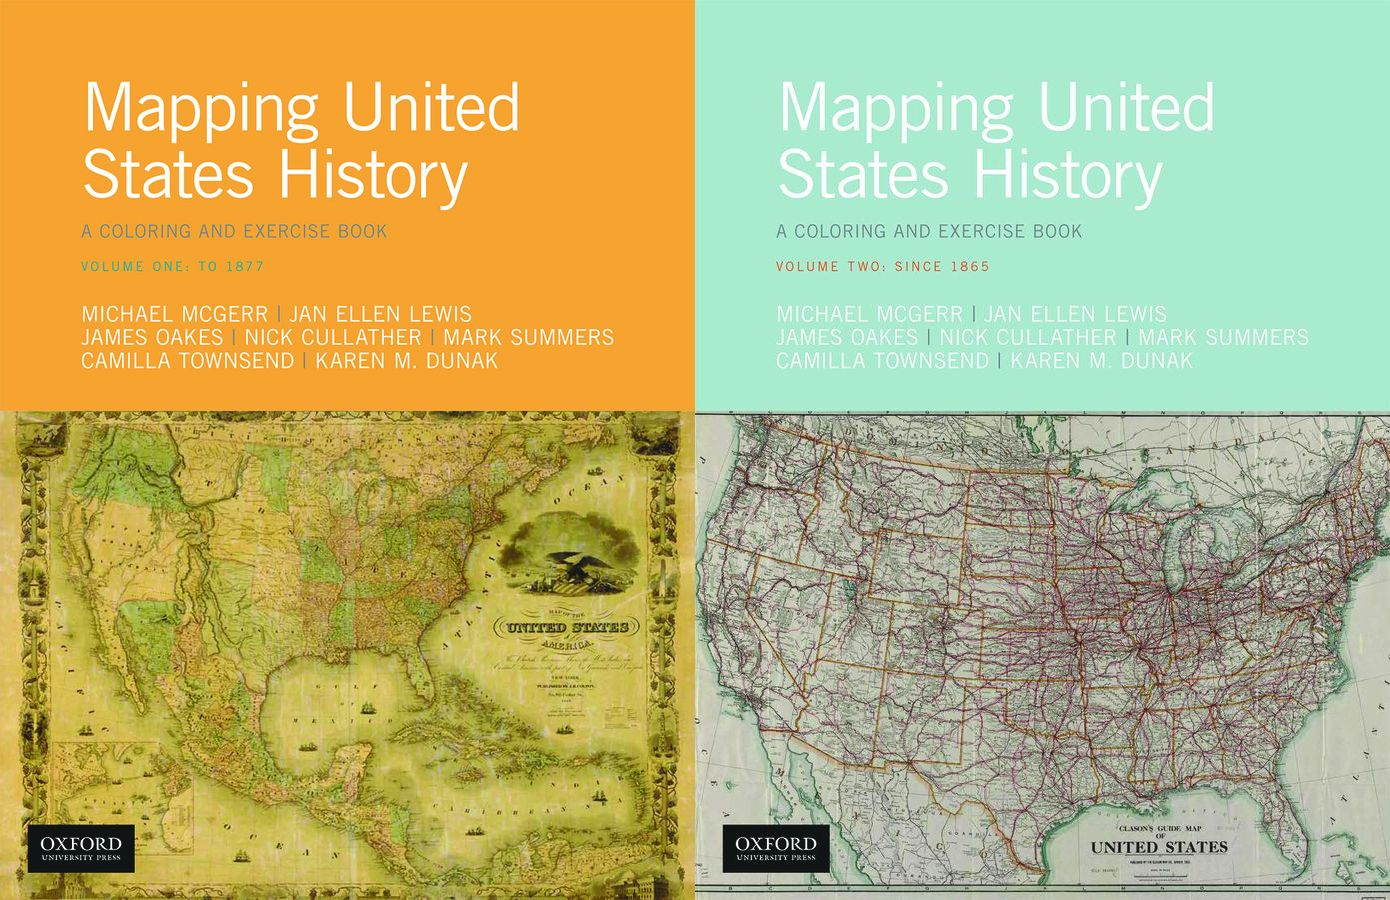 Mapping United States History: A Coloring and Exercise Book